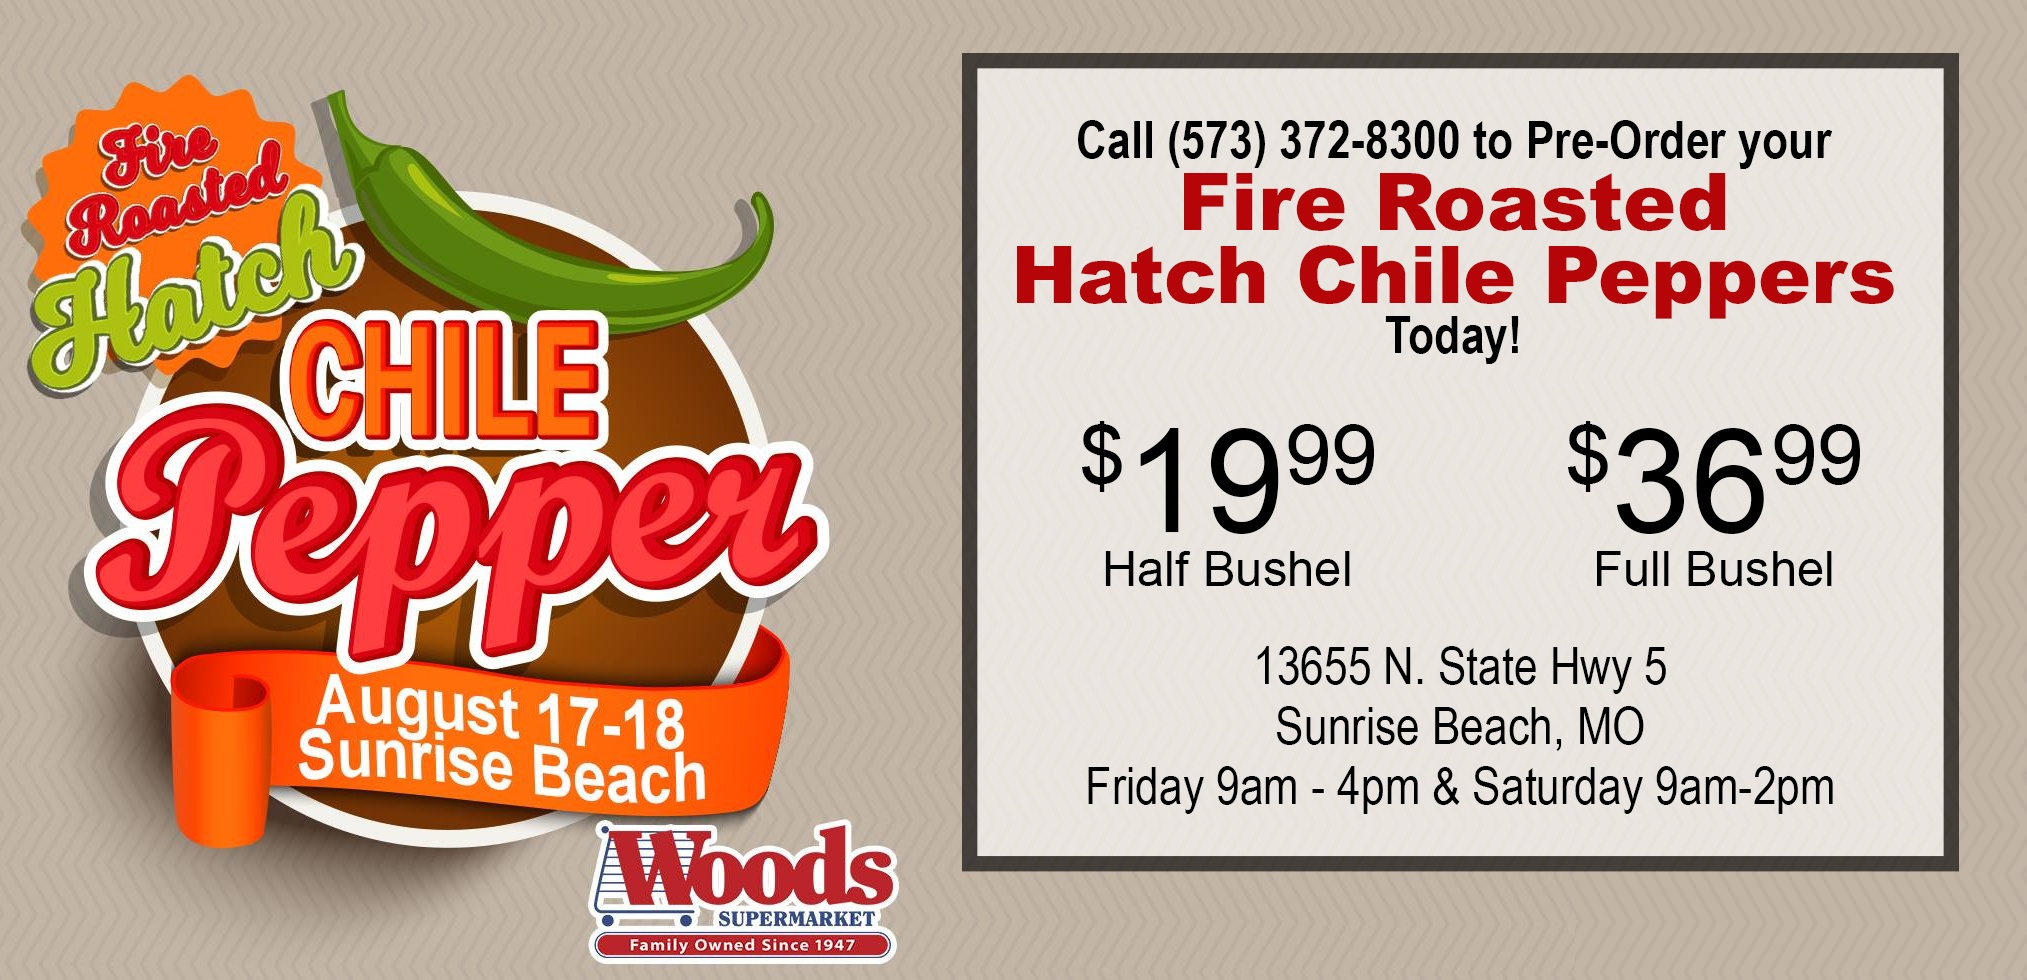 Fire Roasted Hatch Chile Peppers Come To Sunrise Beach Woods